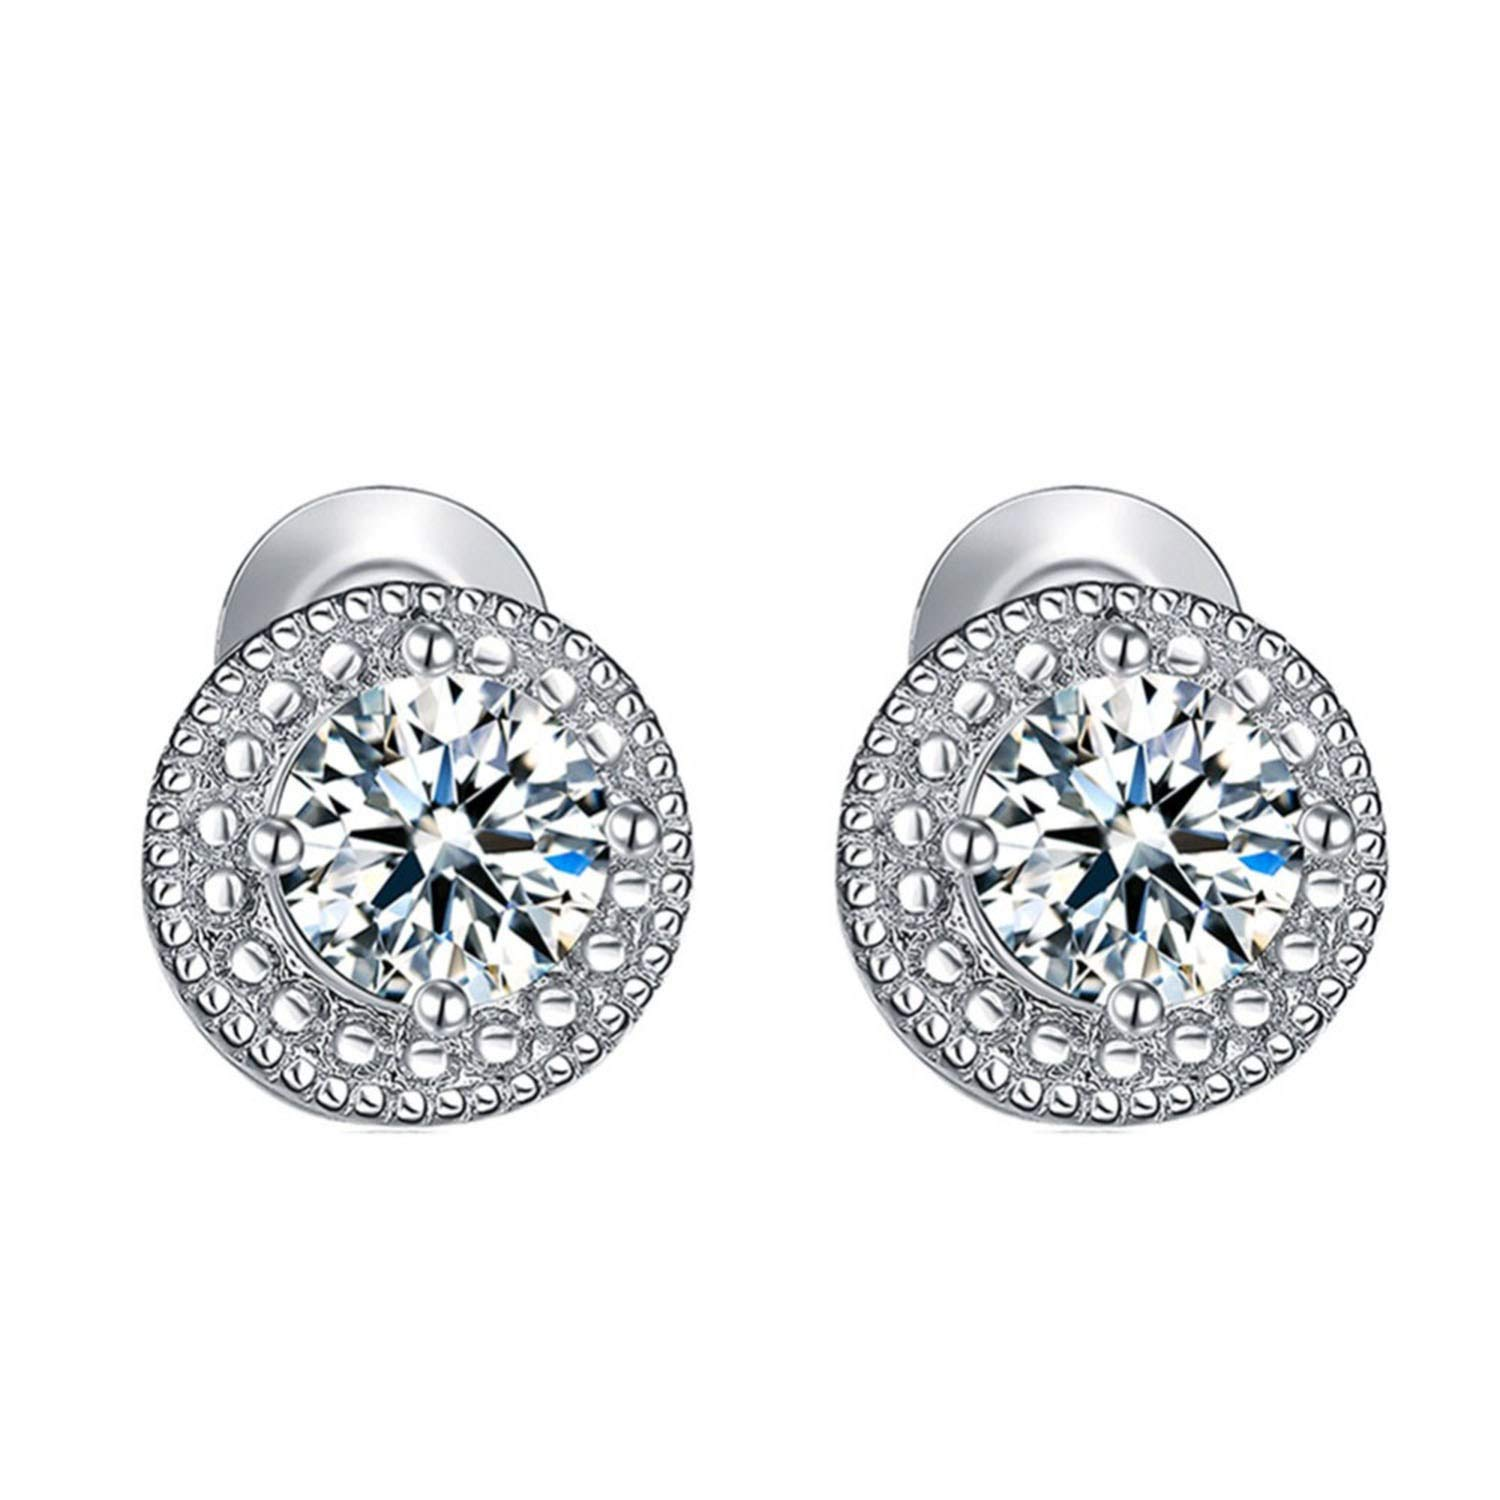 Get-in White Gold Color Micro Round Crystal Stud Earrings for Women Jewelry